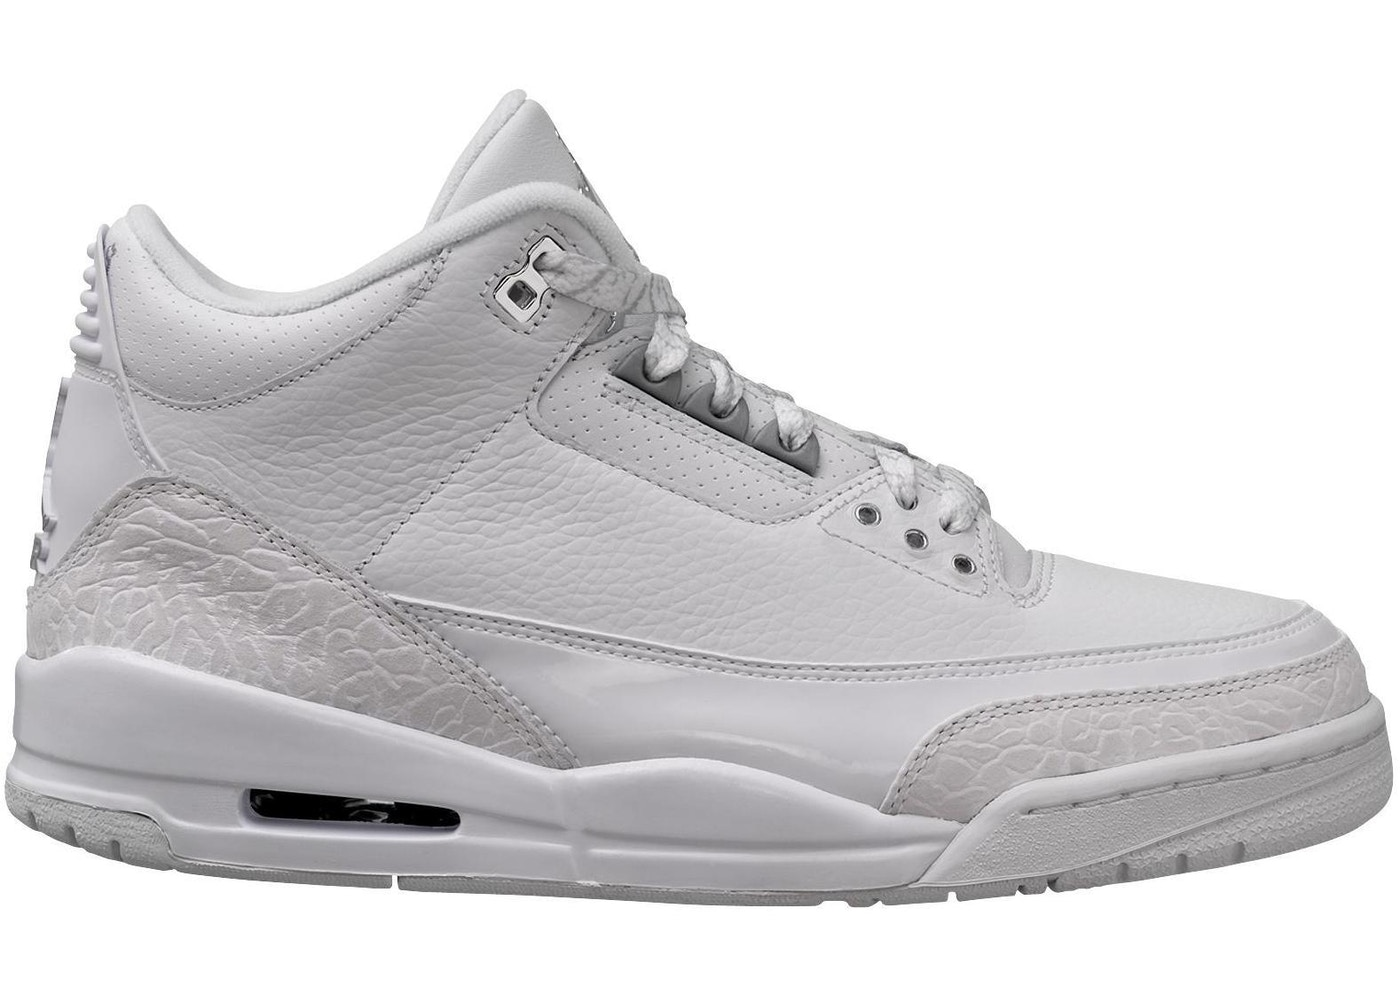 eac50e5cf40 Jordan 3 Retro Pure Money - 136064-103